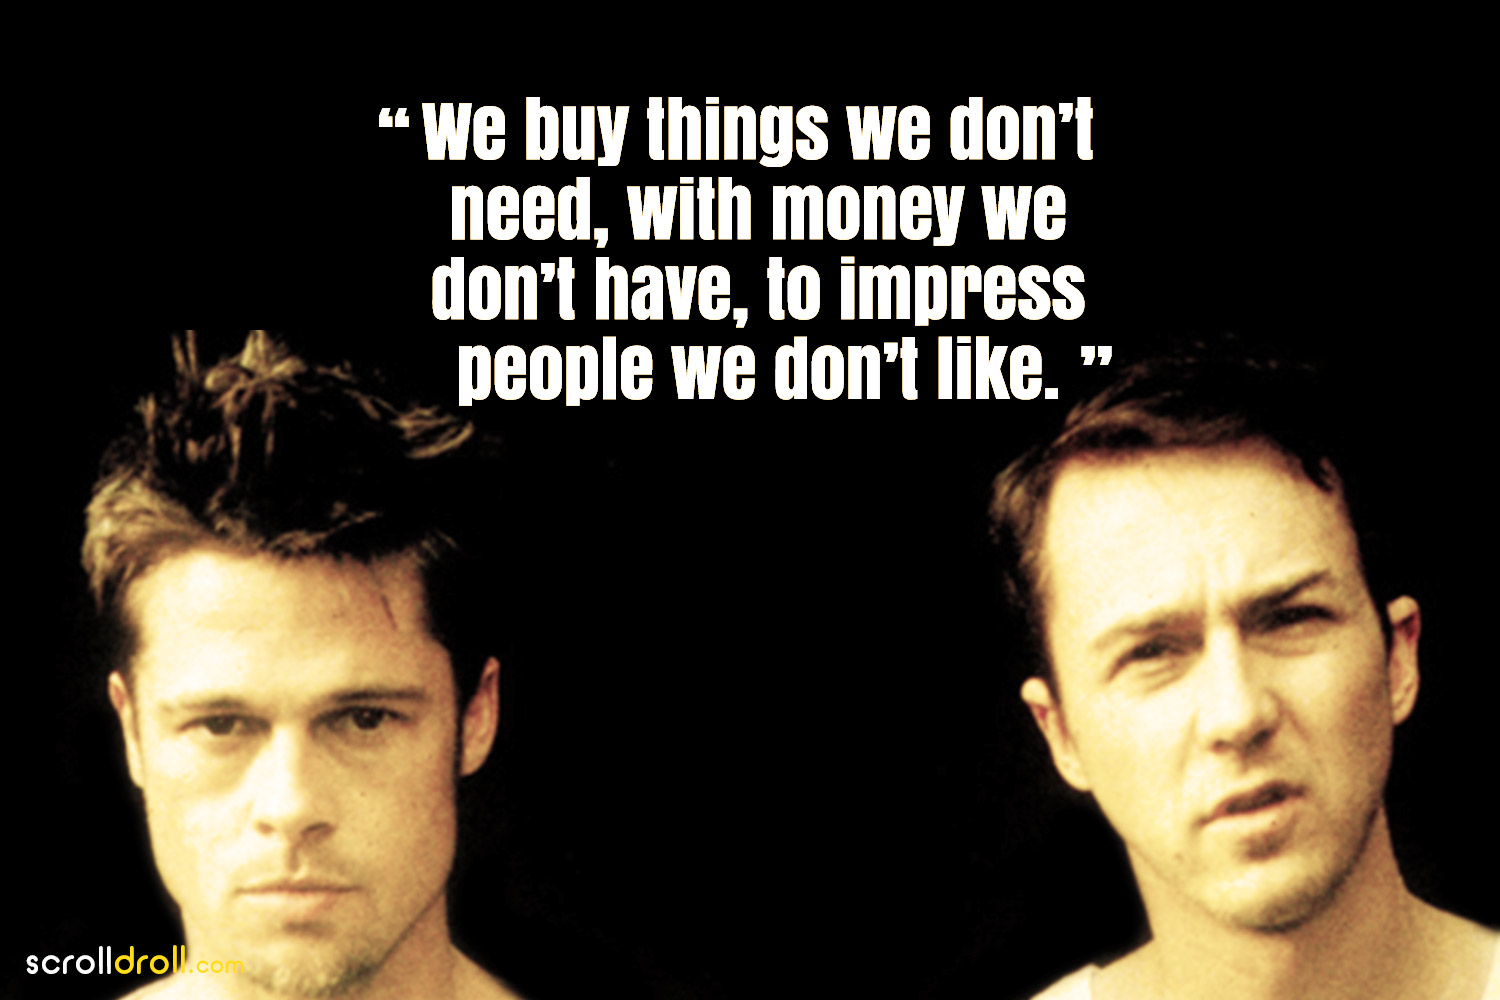 Fight Club Quotes- we buy things we dont need. with money we dont have to impress people we dont like